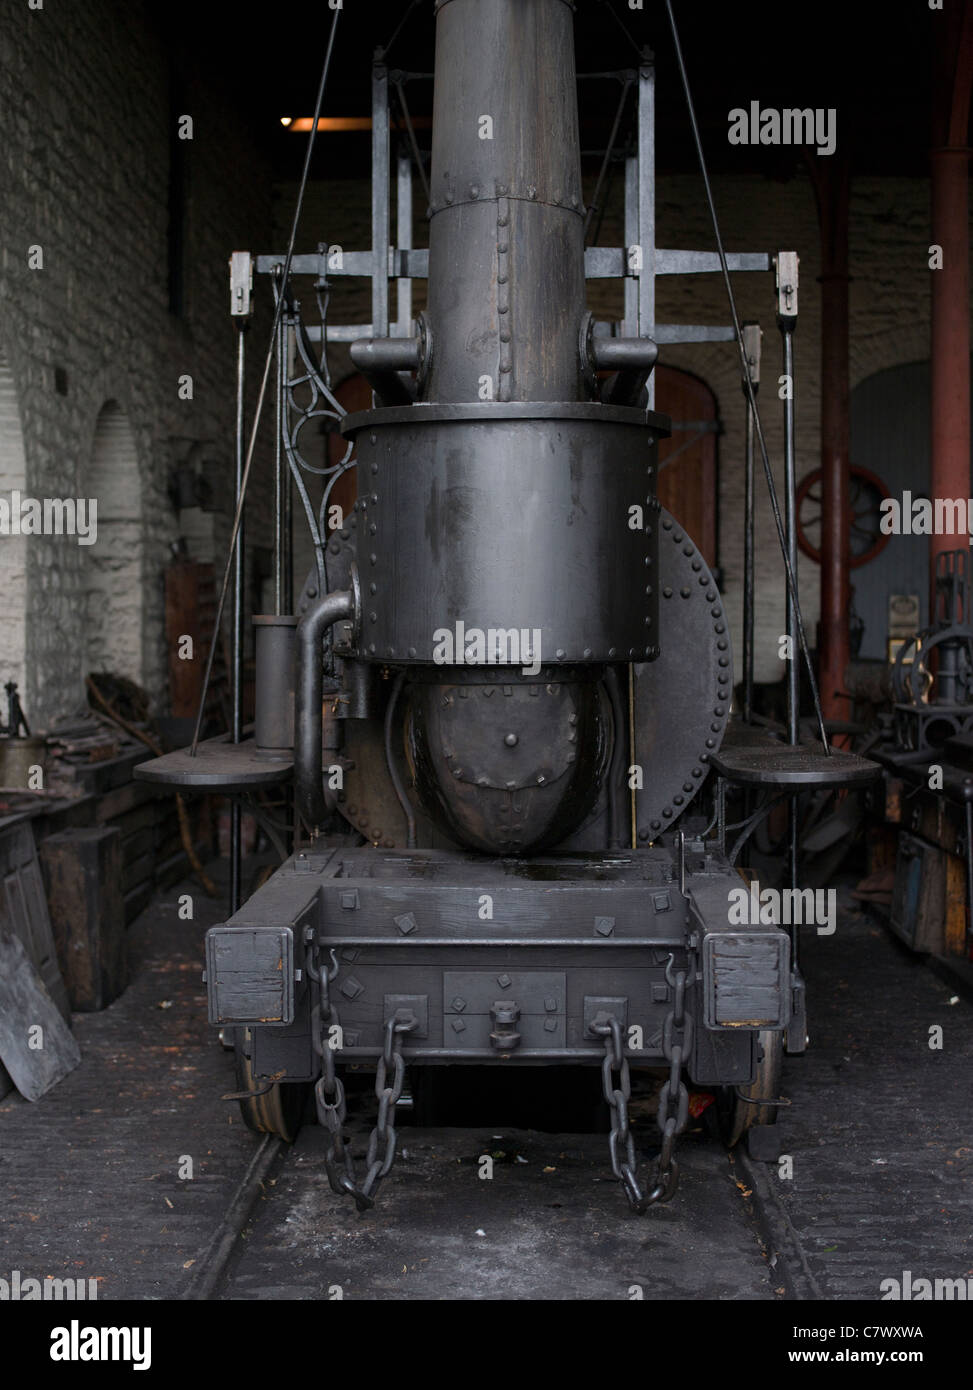 Beamish, The North of England Open Air Museum County Durham - Steam train locomotive engine - Stock Image